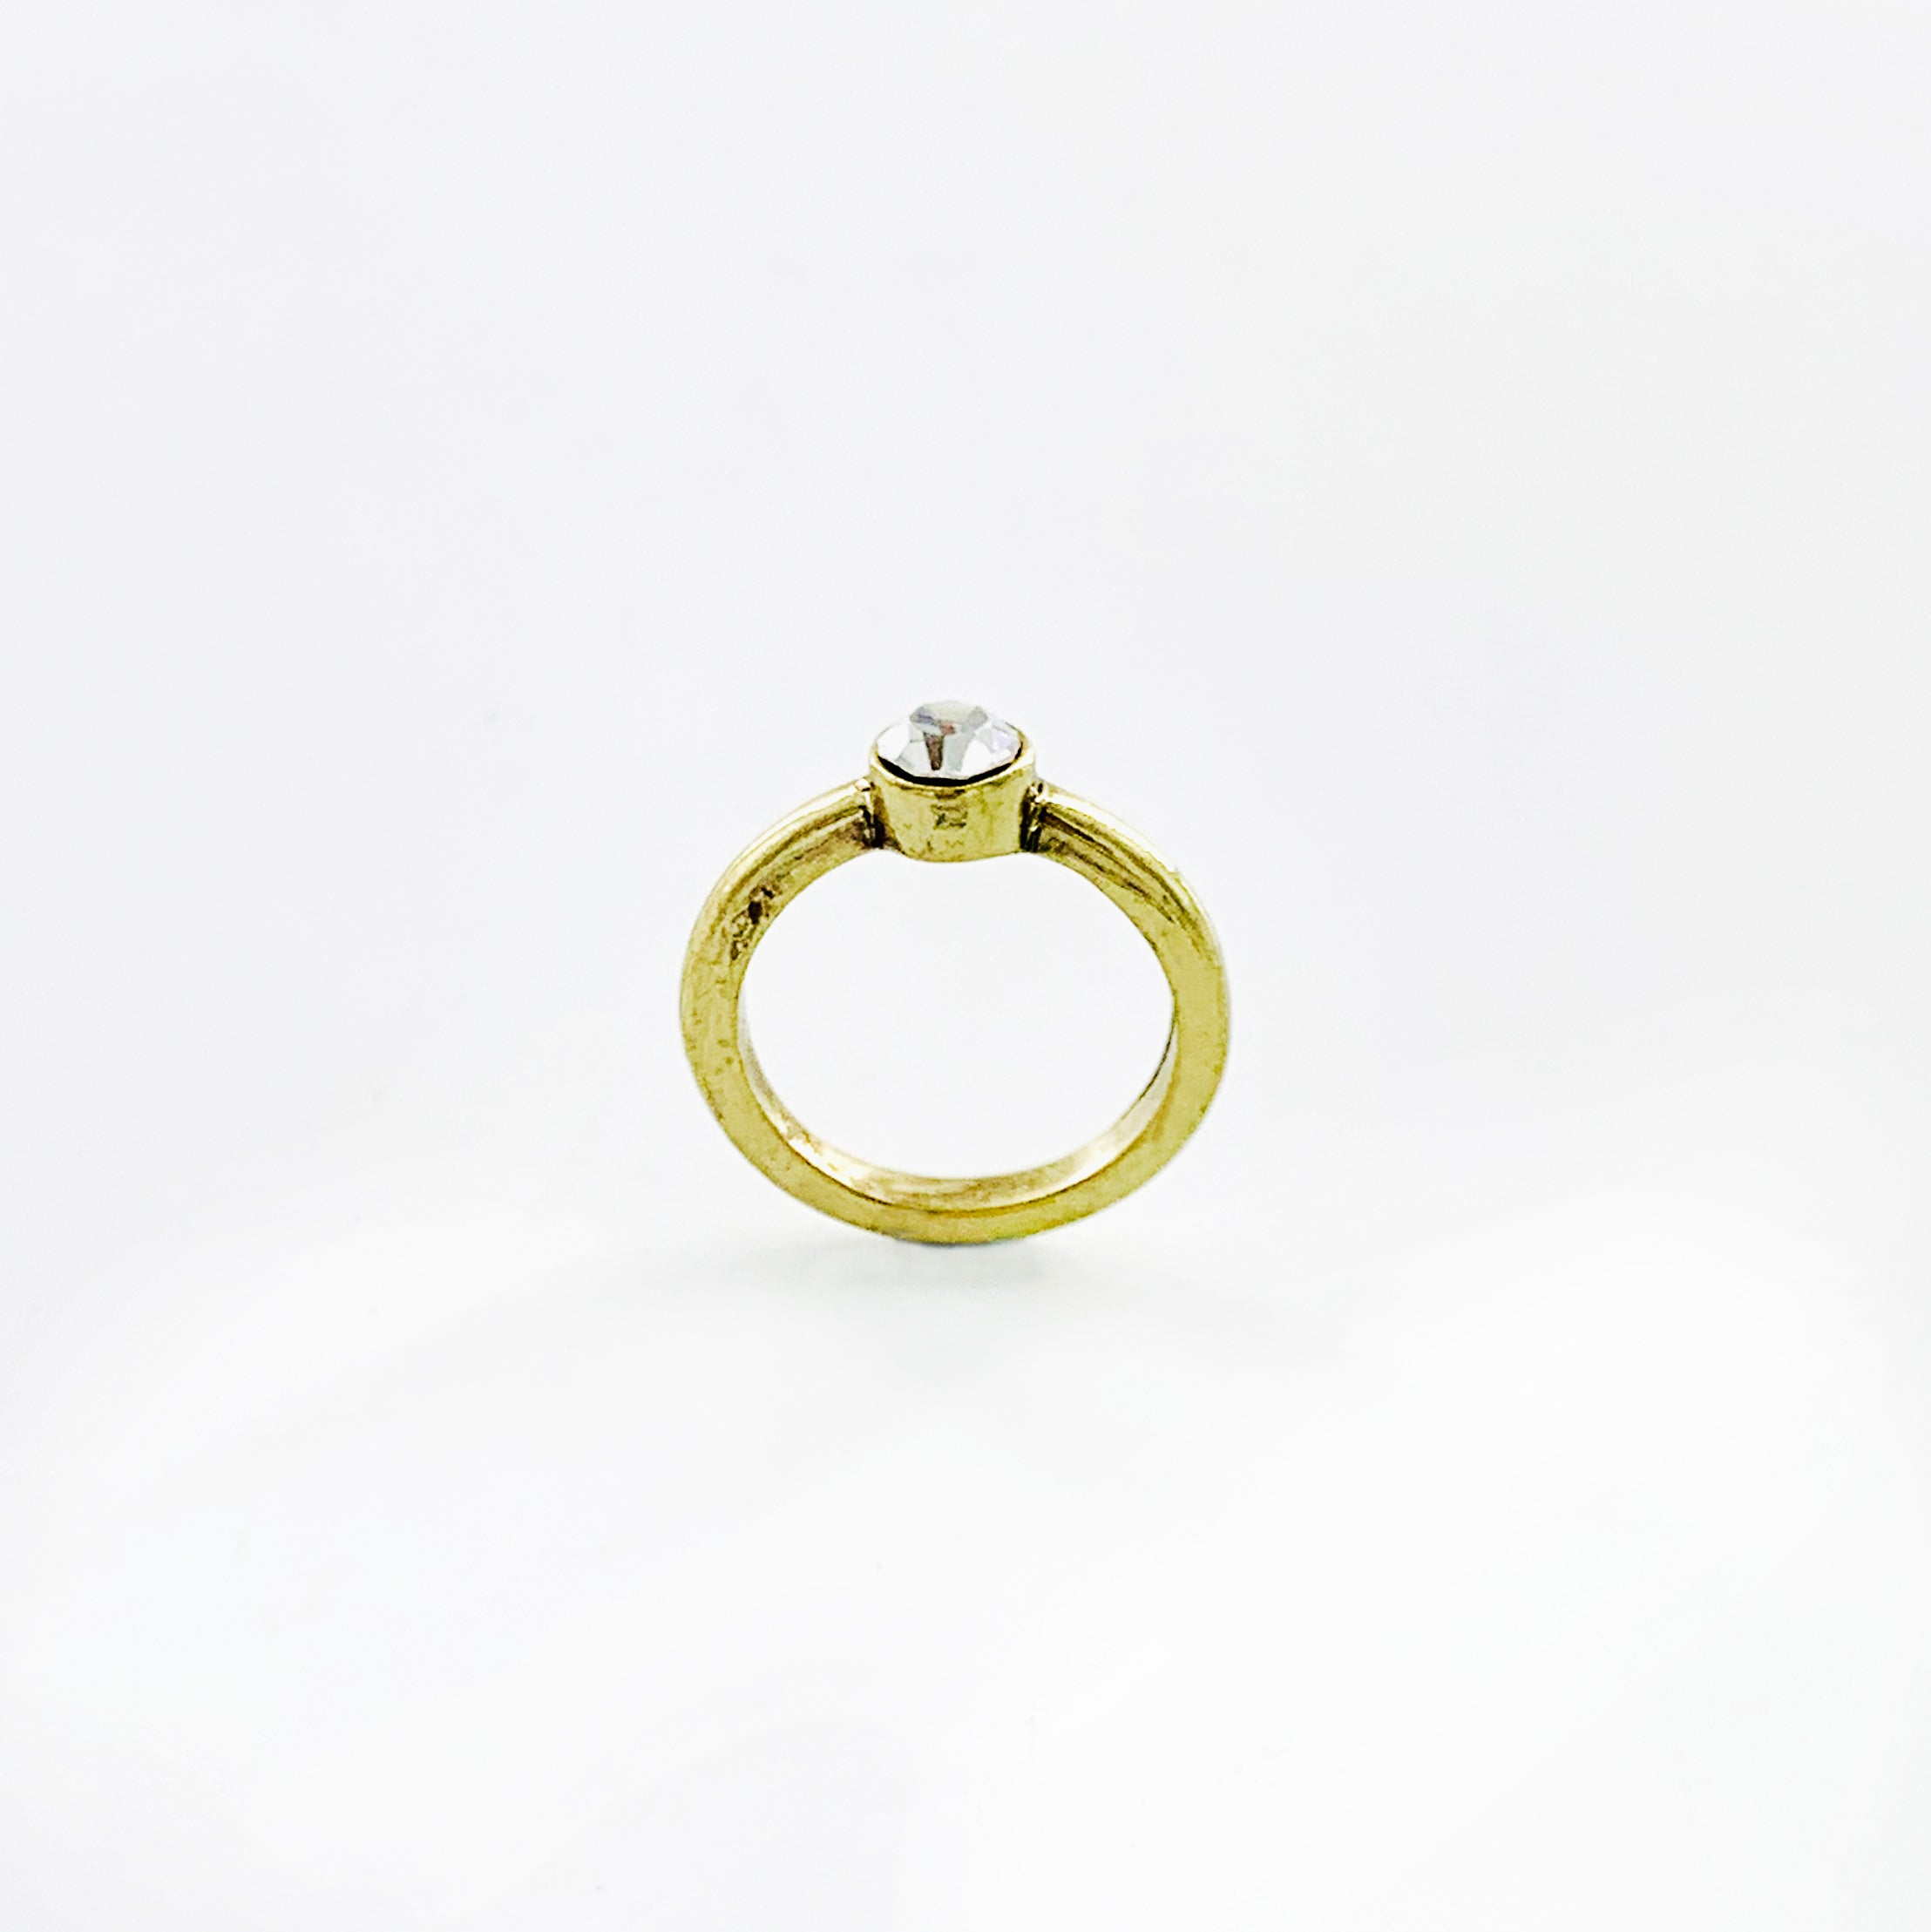 Rustic gold band with small diamante stone